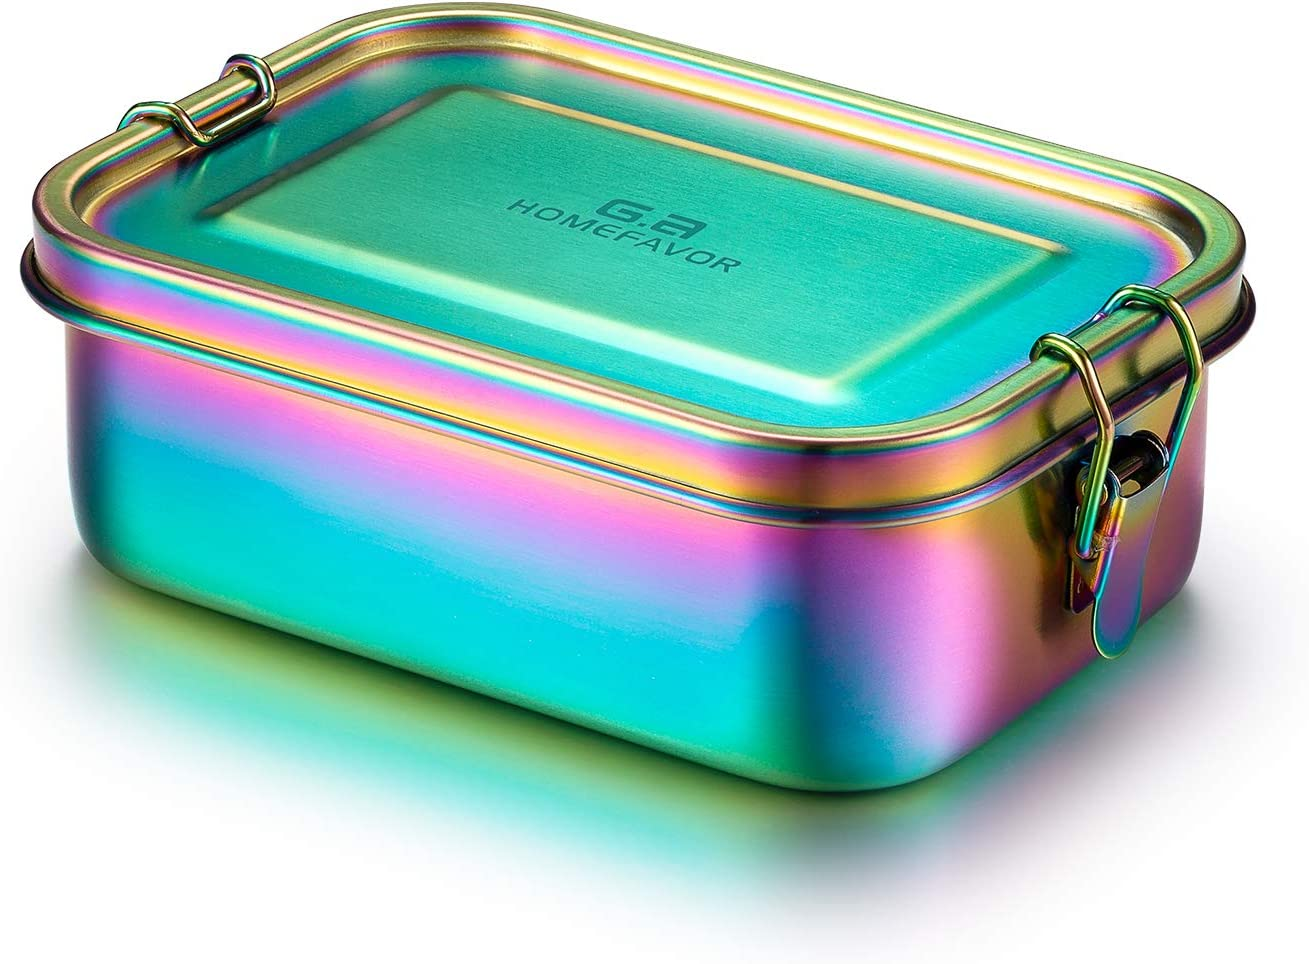 G.a HOMEFAVOR 800ml Stainless Steel Rainbow Lunch Box Bento Box - Eco-Friendly Insulated Snack Storage - Leakproof & Dishwasher Safe Metal Food Containers - Gifts for Kids Womens